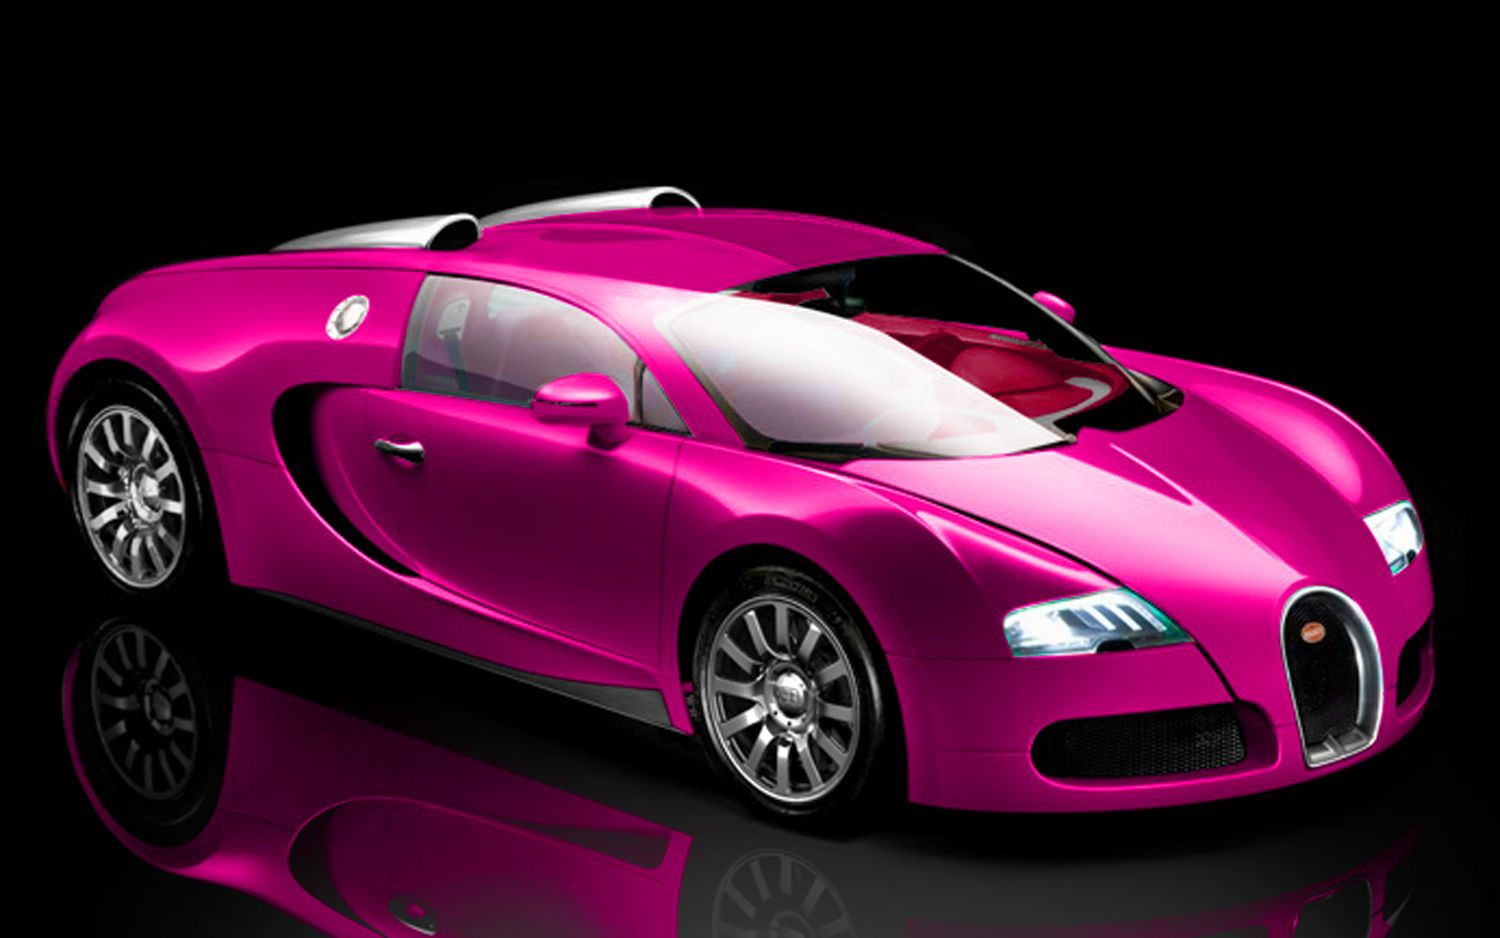 Pink 2011 Bugatti Veyron Super Sport And Luxury Car With Amazing Color Style